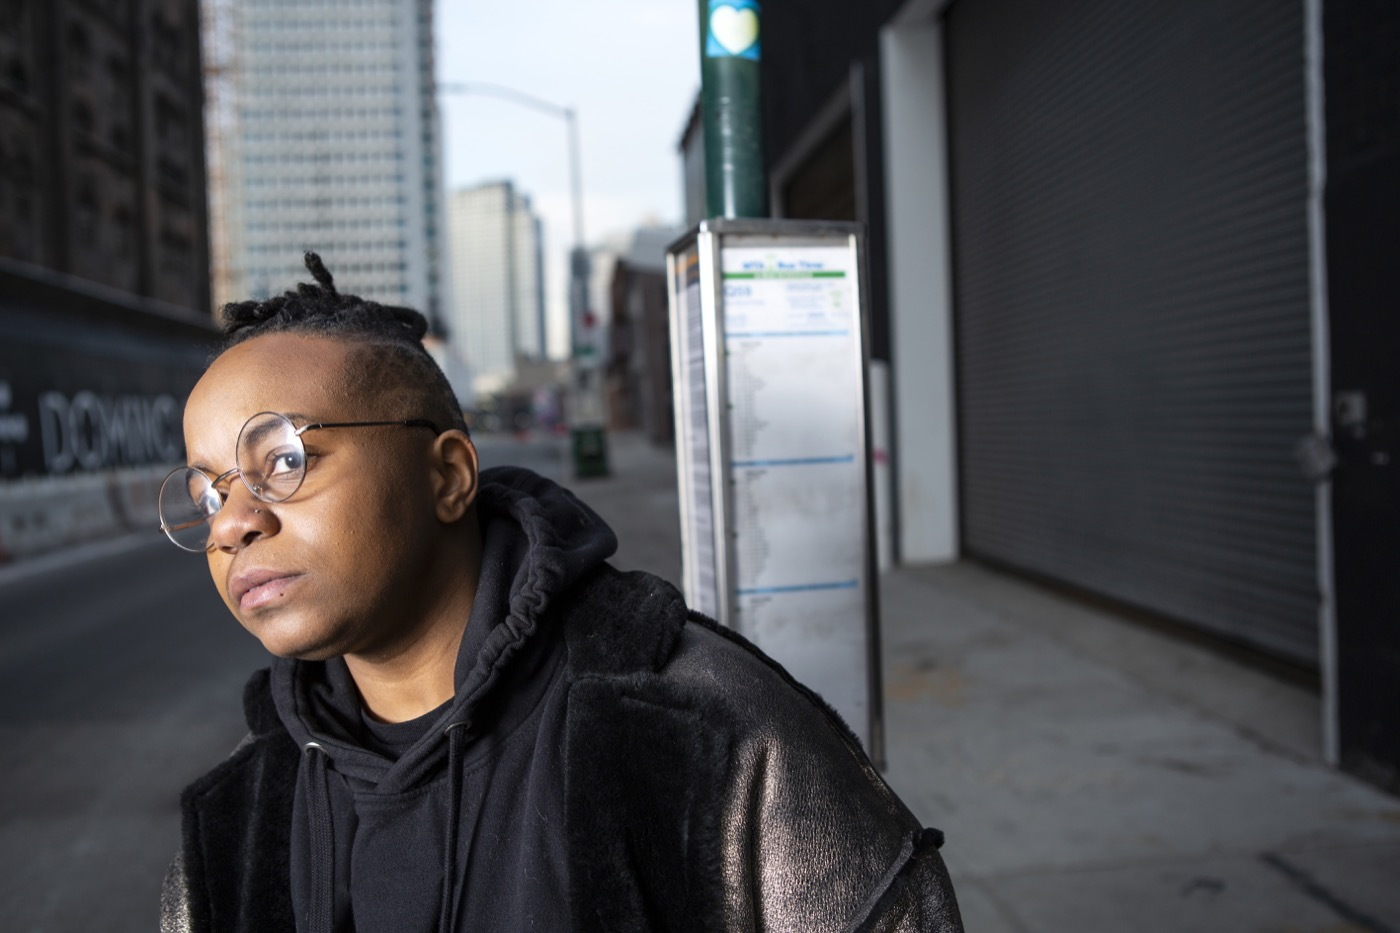 A transmasculine person waiting for the bus in a city close up